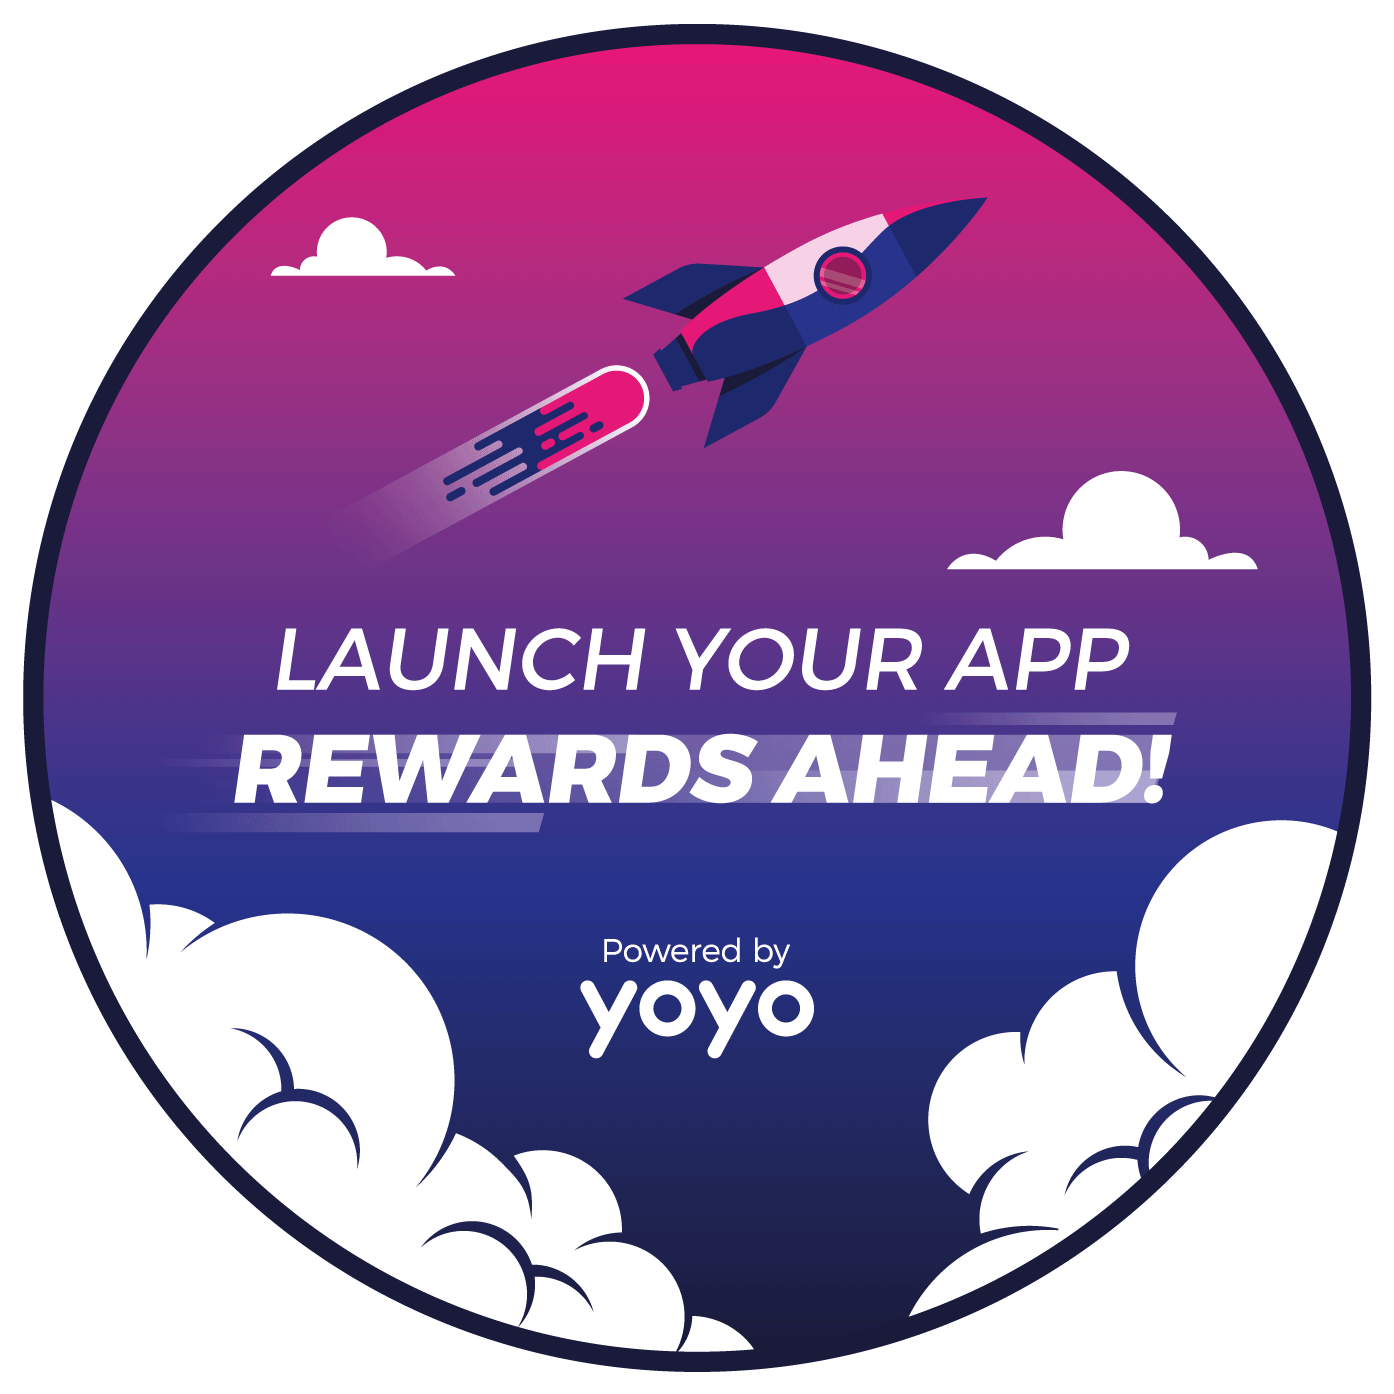 Yoyo App - Rewards Ahead!